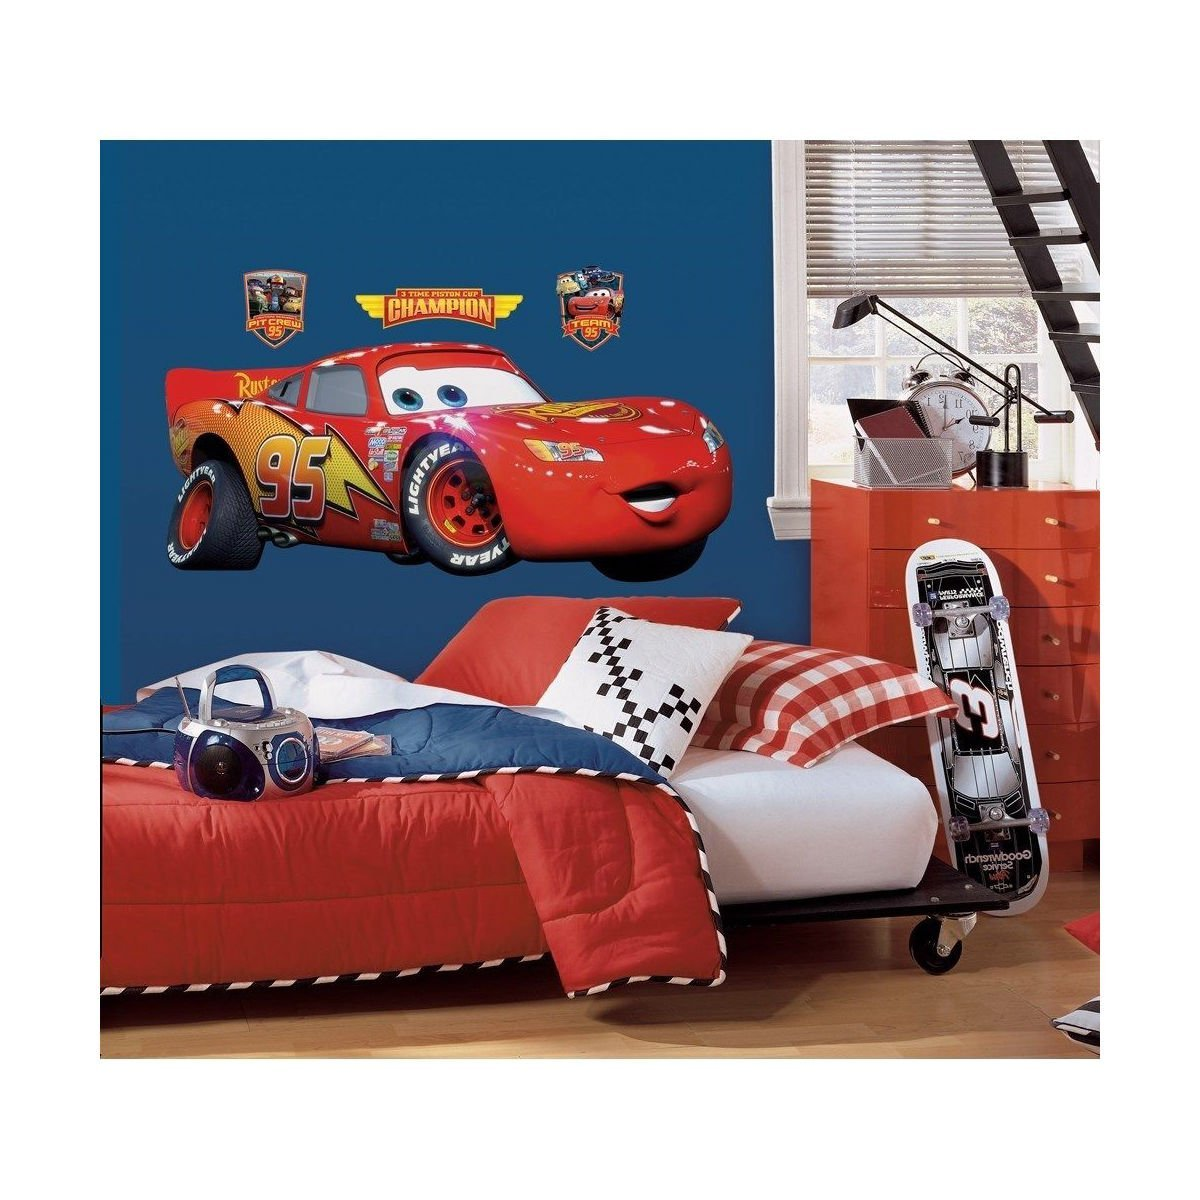 Cheap Wall Decor Cars Find Wall Decor Cars Deals On Line At Alibaba